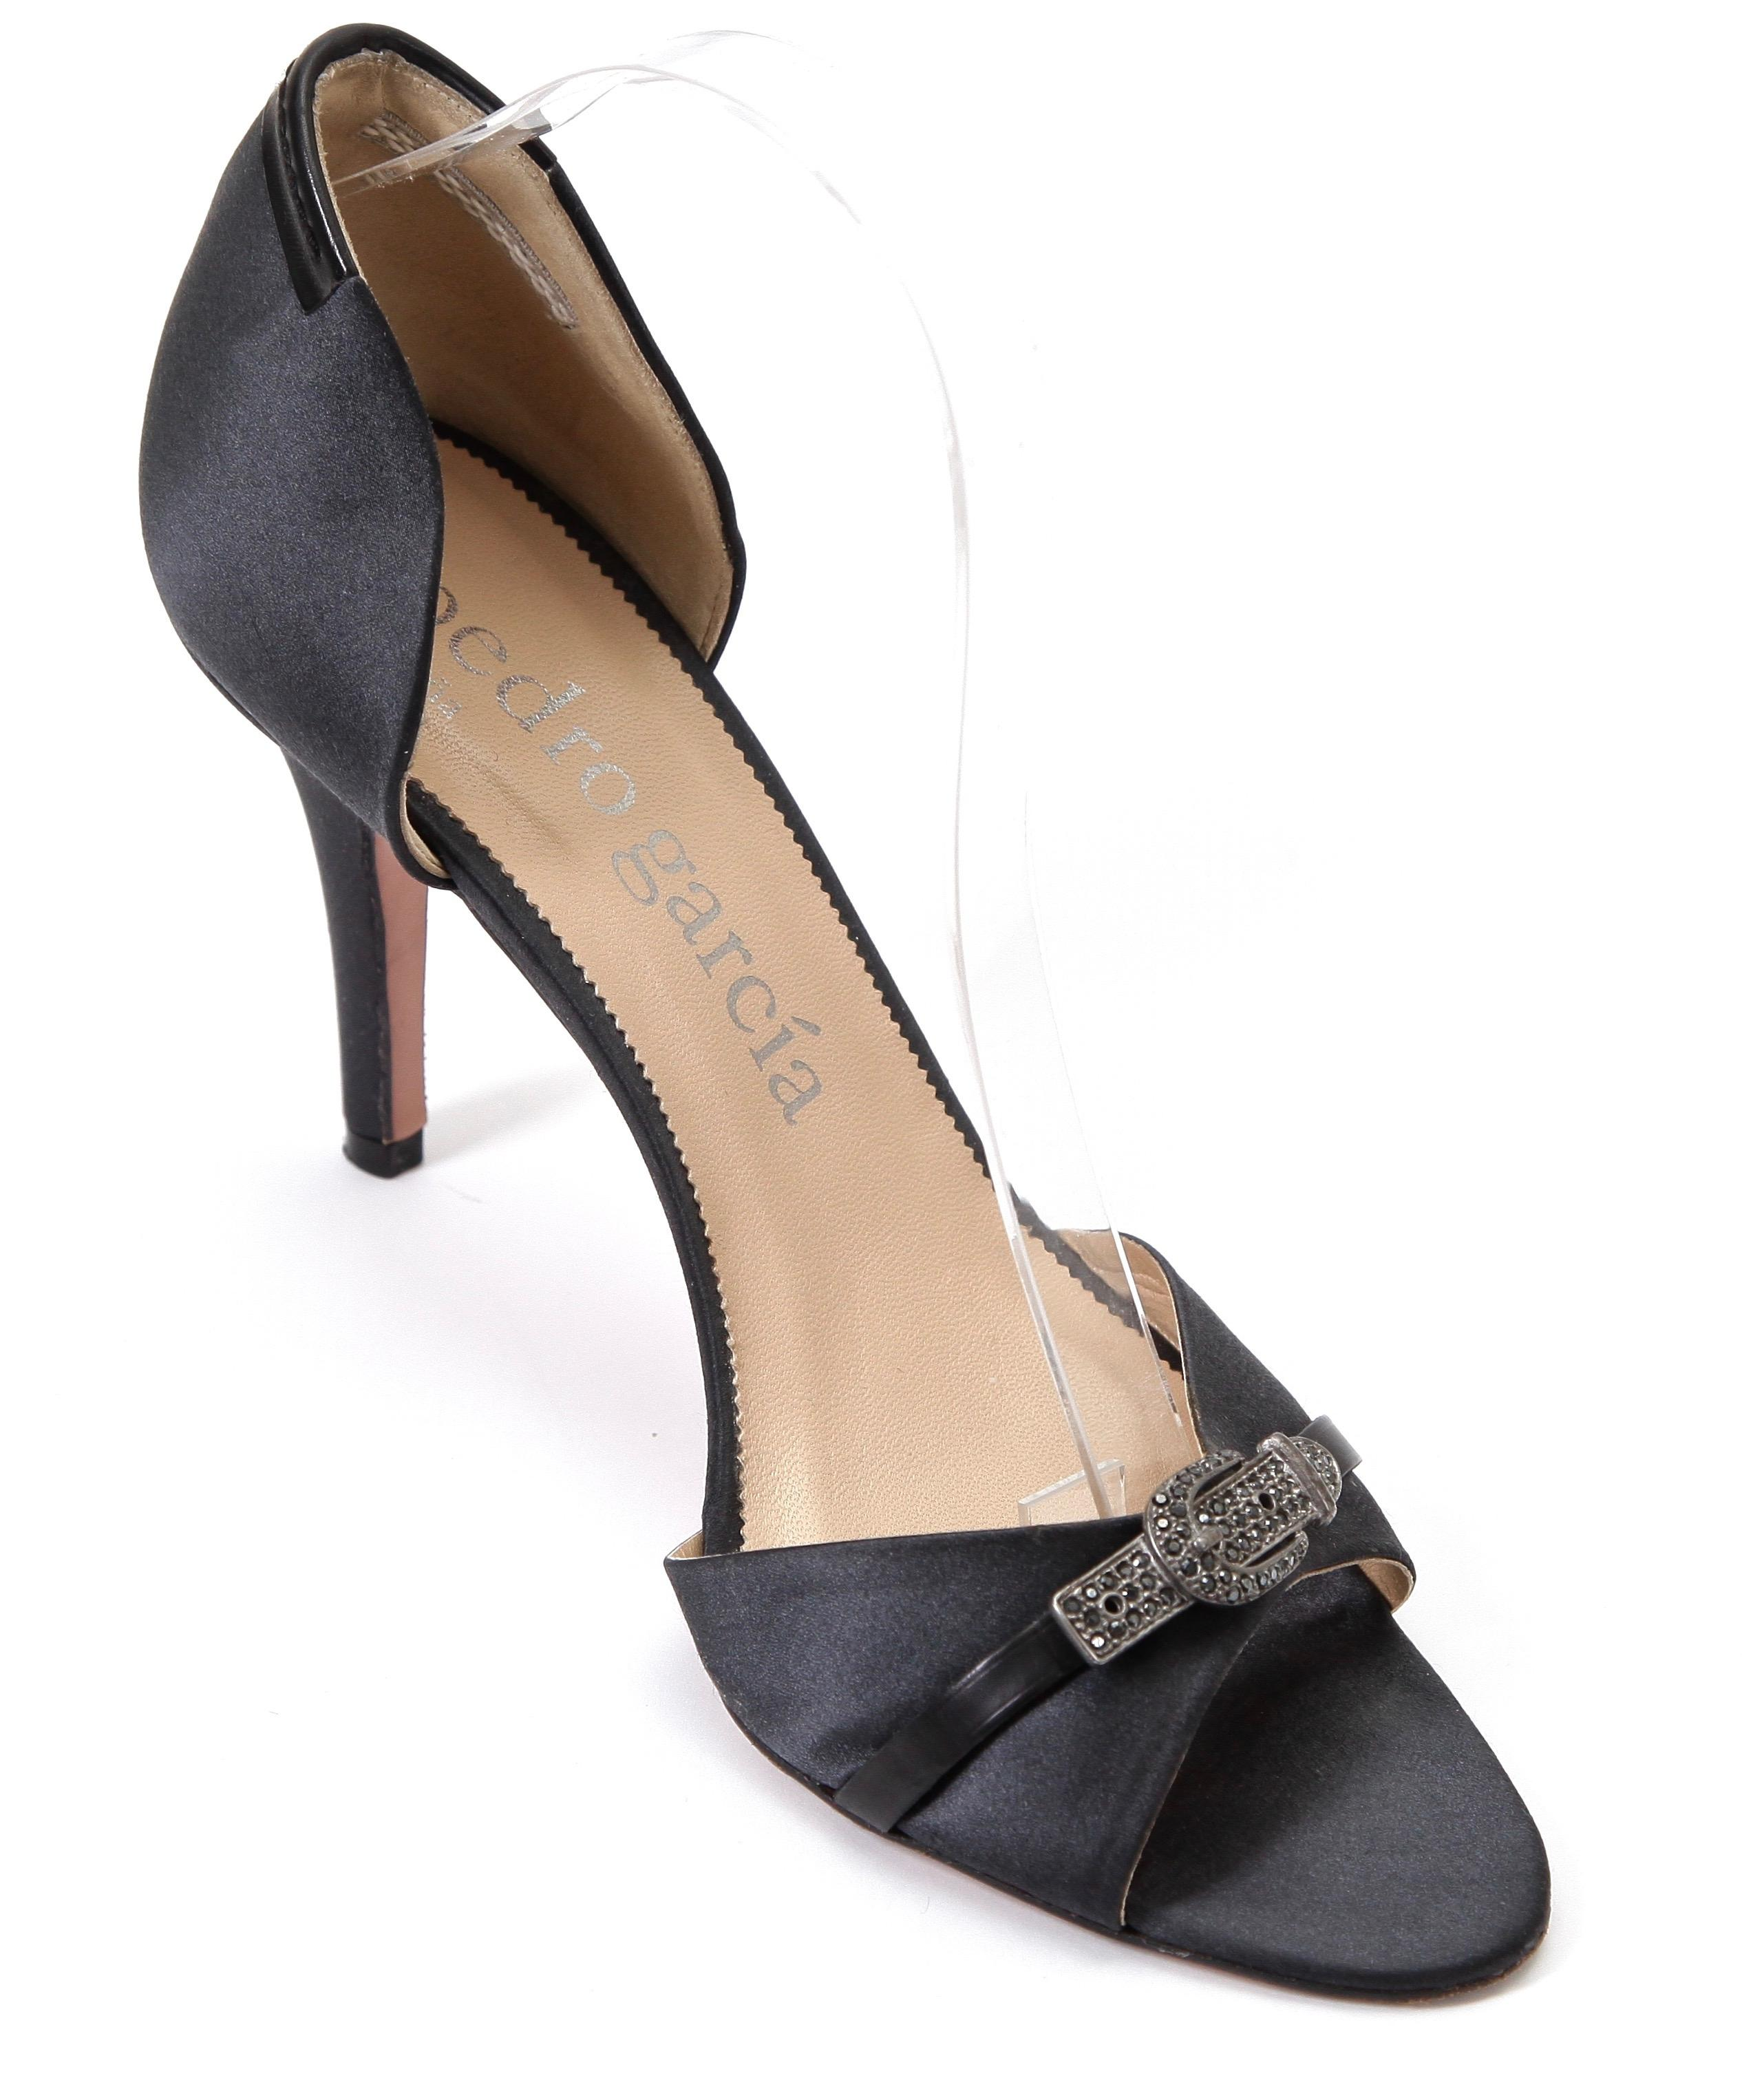 buy cheap best store to get outlet cheap Pedro Garcia Satin Peep-Toe Pumps clearance best sale cheap price buy discount outlet 100% guaranteed dpKlP2gml